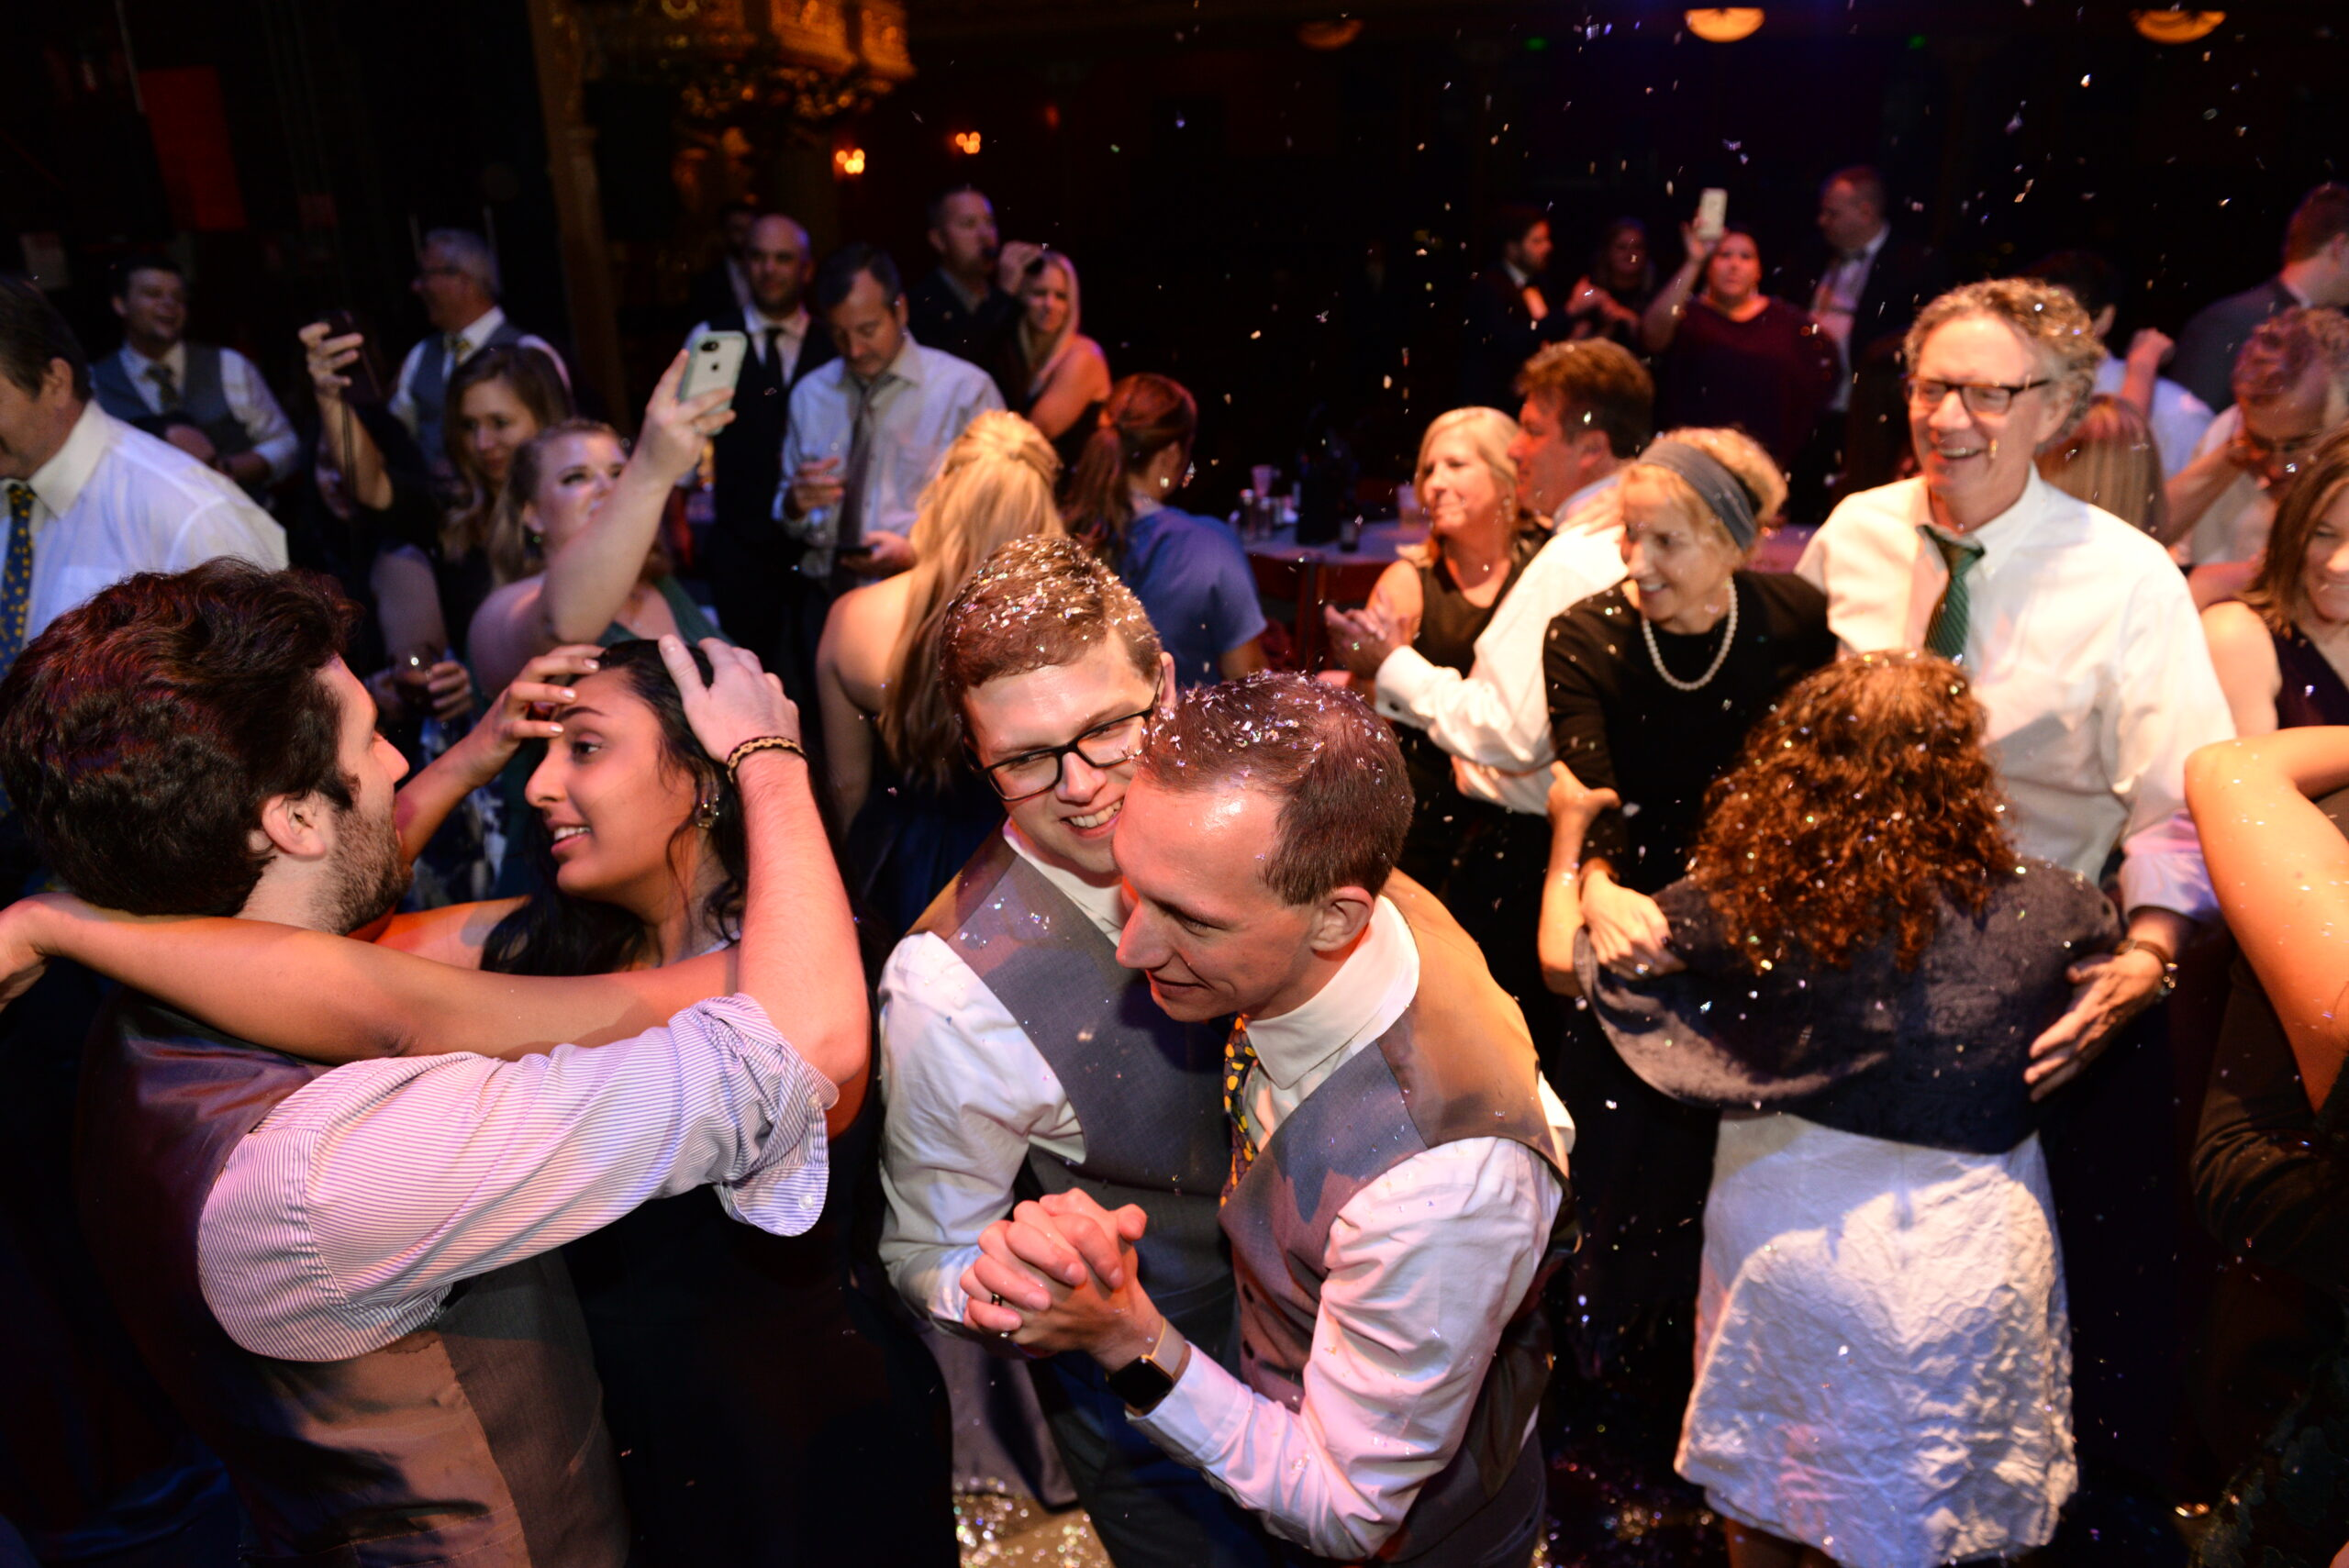 Groooms on dancefloor with happy guests and confetti at The Colonial Theatre